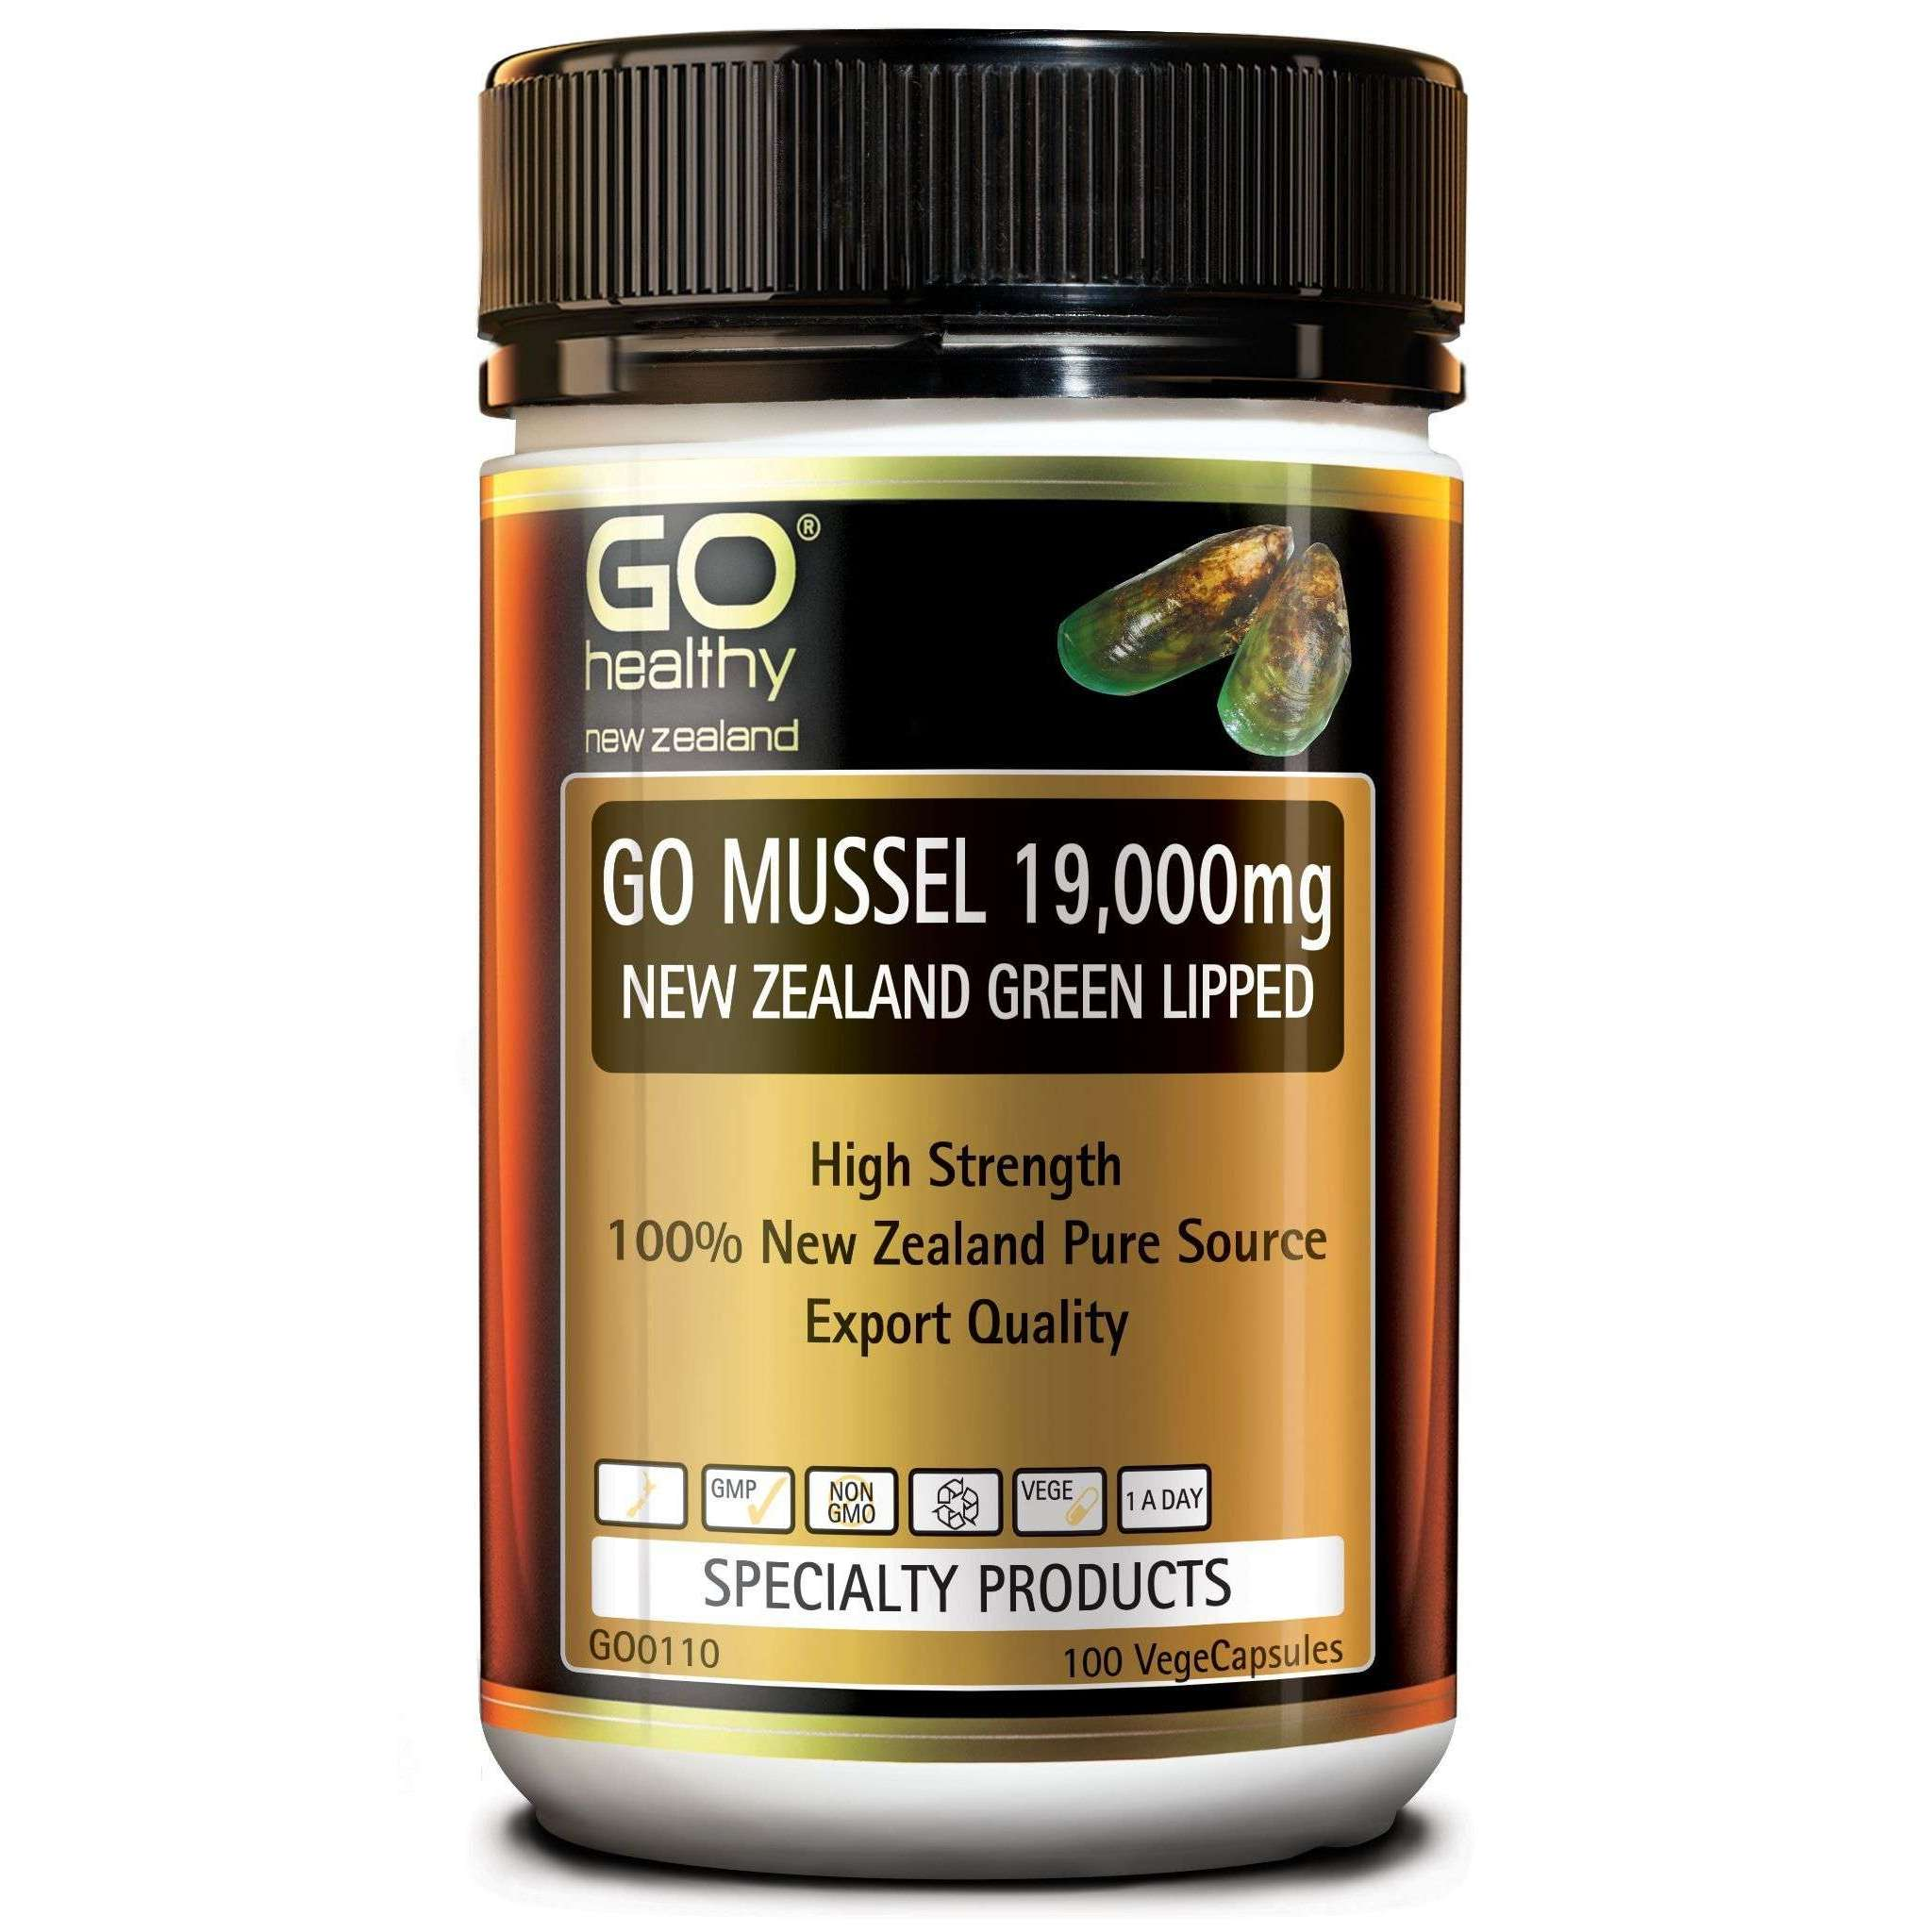 Go Healthy Go Mussel 19,000mg